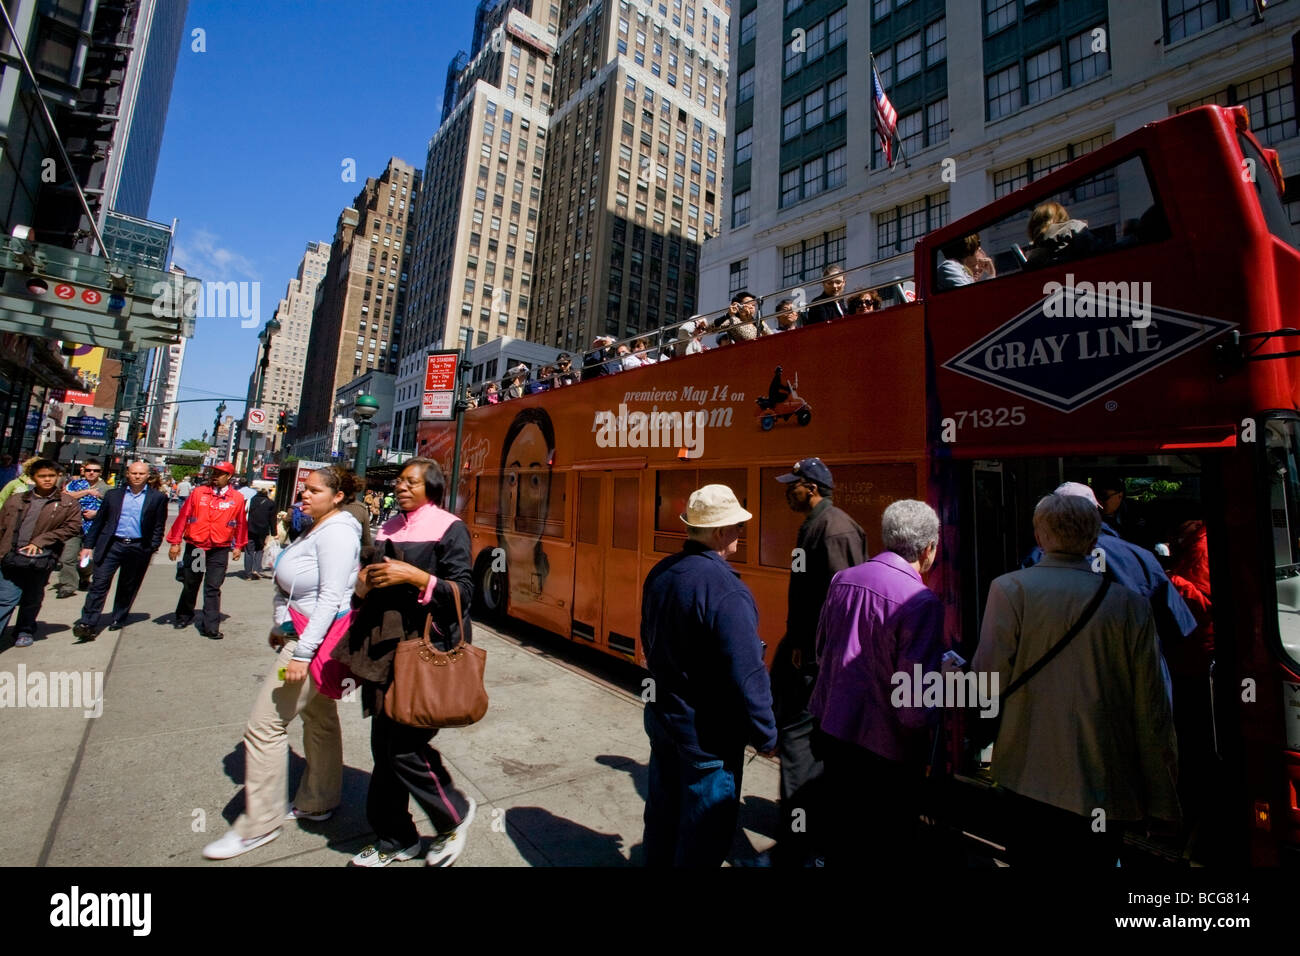 New York City Bus Tours USA Stock Photo Royalty Free Image - Bus tours usa